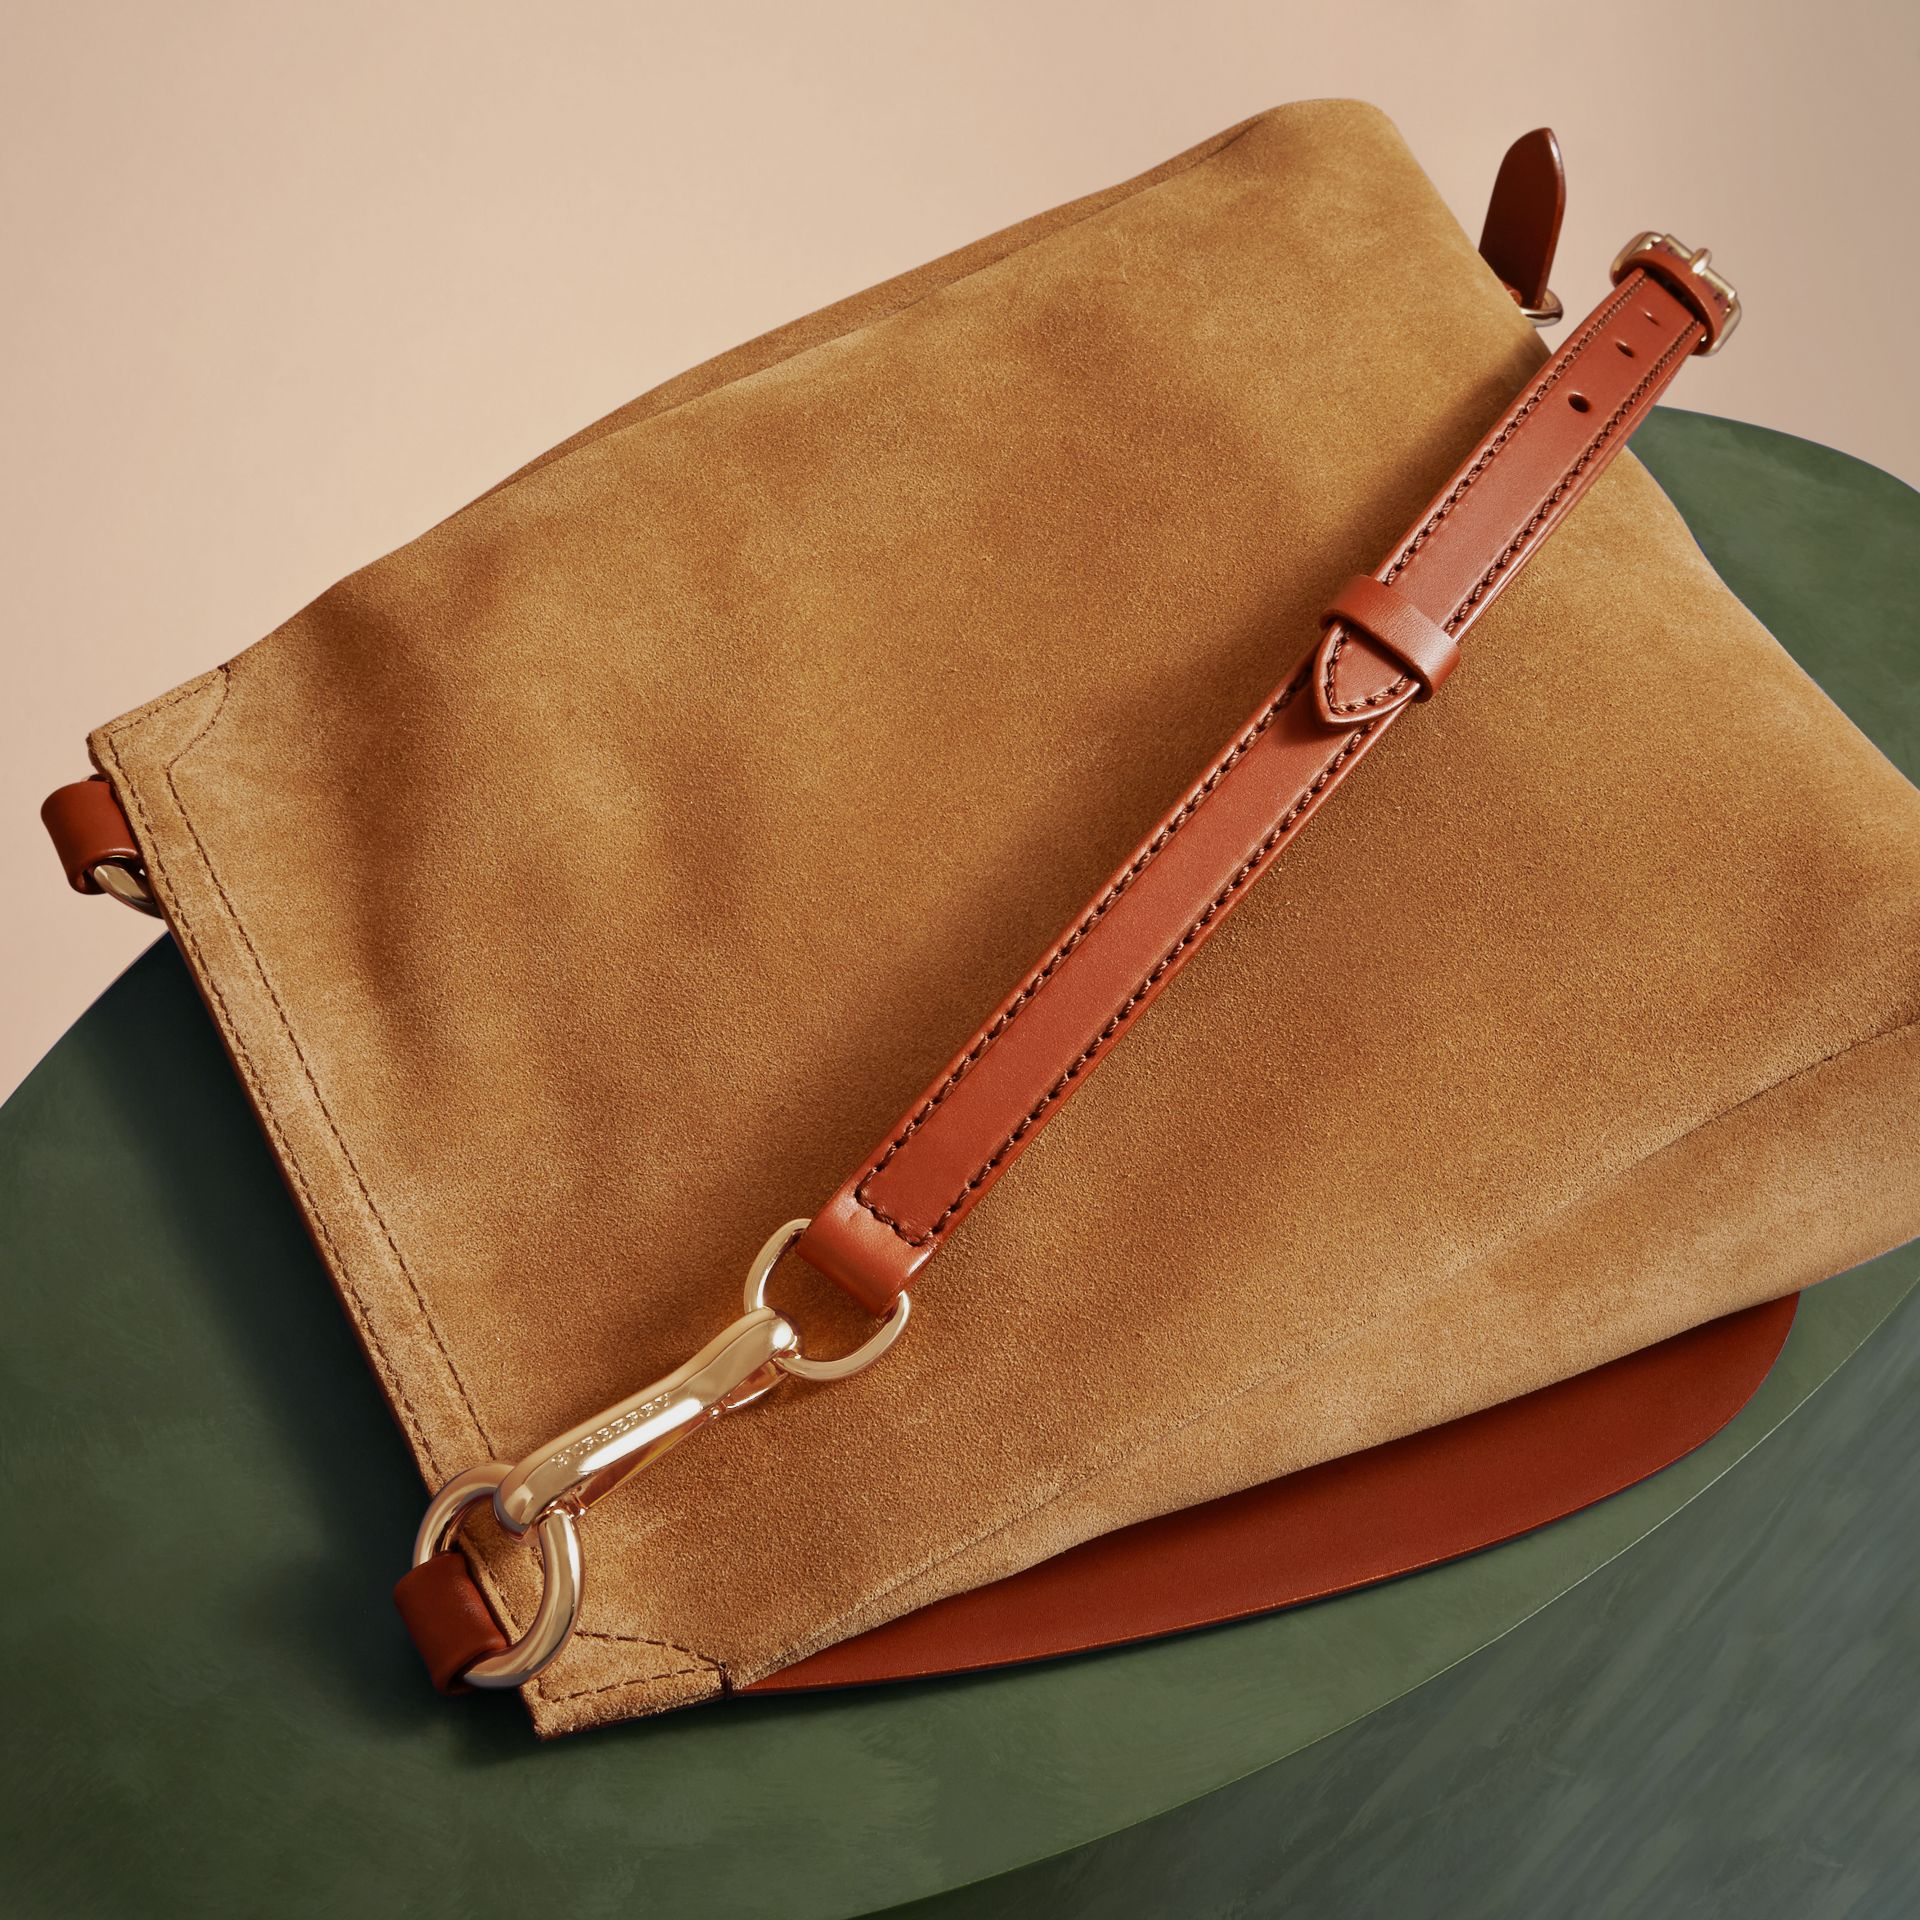 The Small Bridle Bag in Leather and Suede in Tan - Men | Burberry - gallery image 4